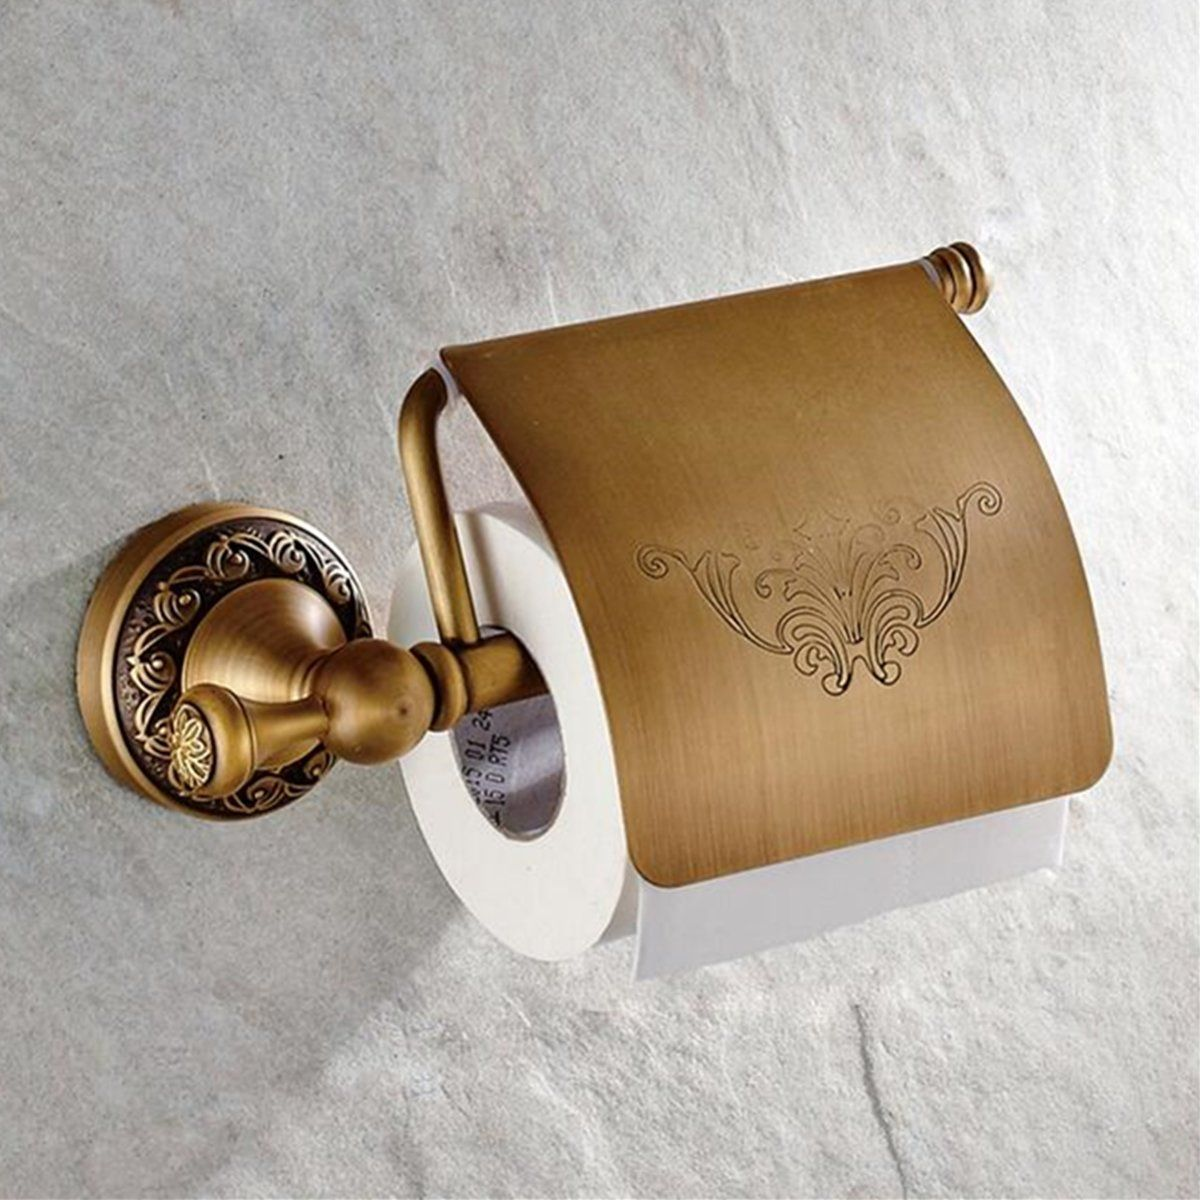 Wall Mounted Antique Brass Toilet Paper Roll Holder Home Accessory Toilet Paper Roll Holder Toilet Paper Holder Paper Holder